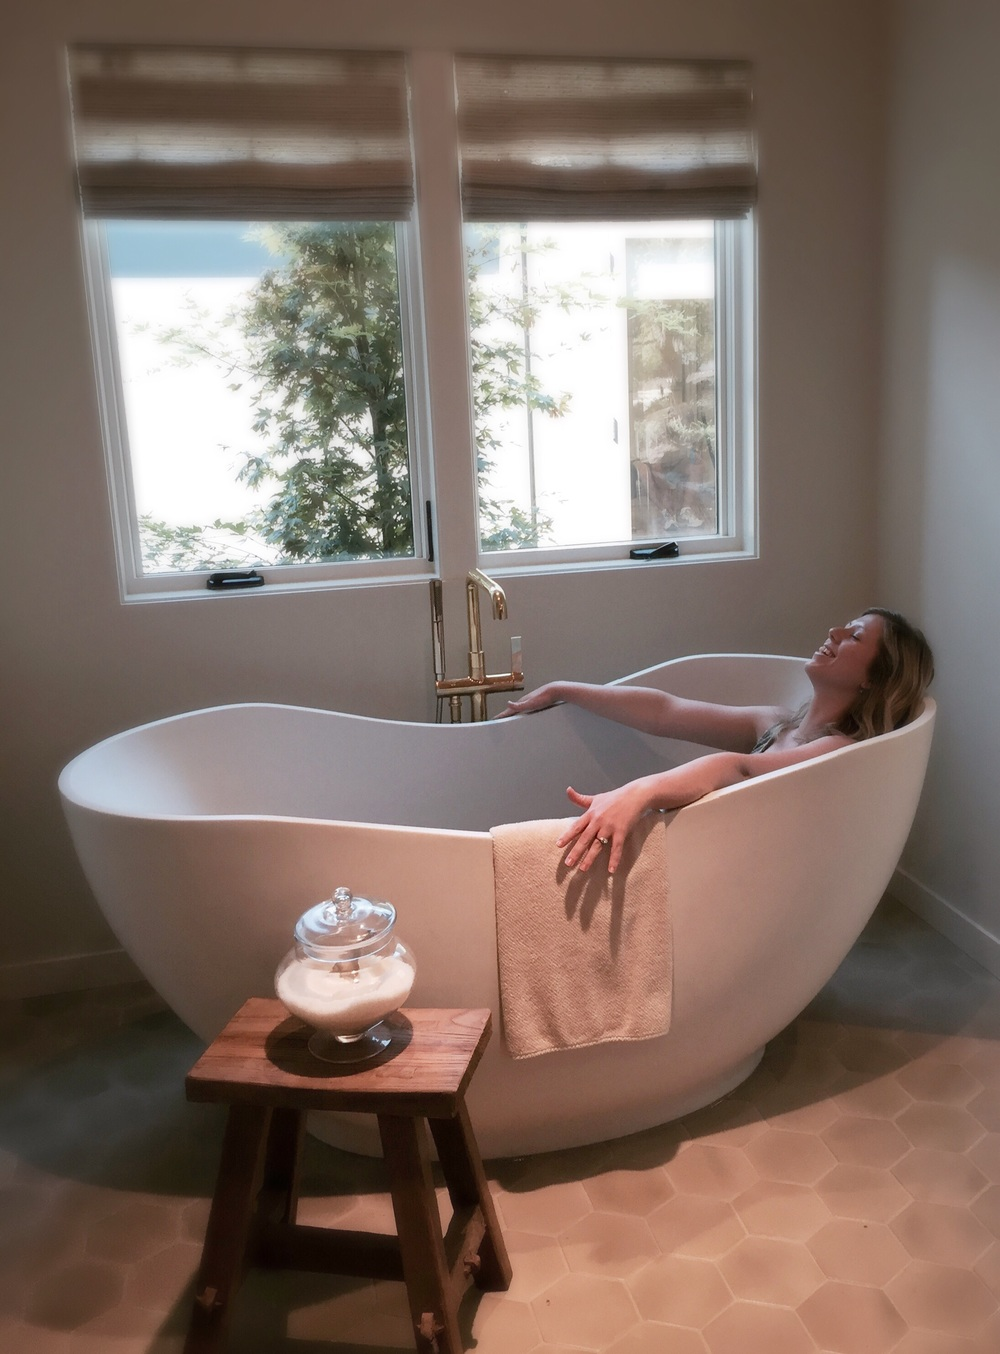 Meghan really liked this tub and if anyone deserves to relax, its this girl